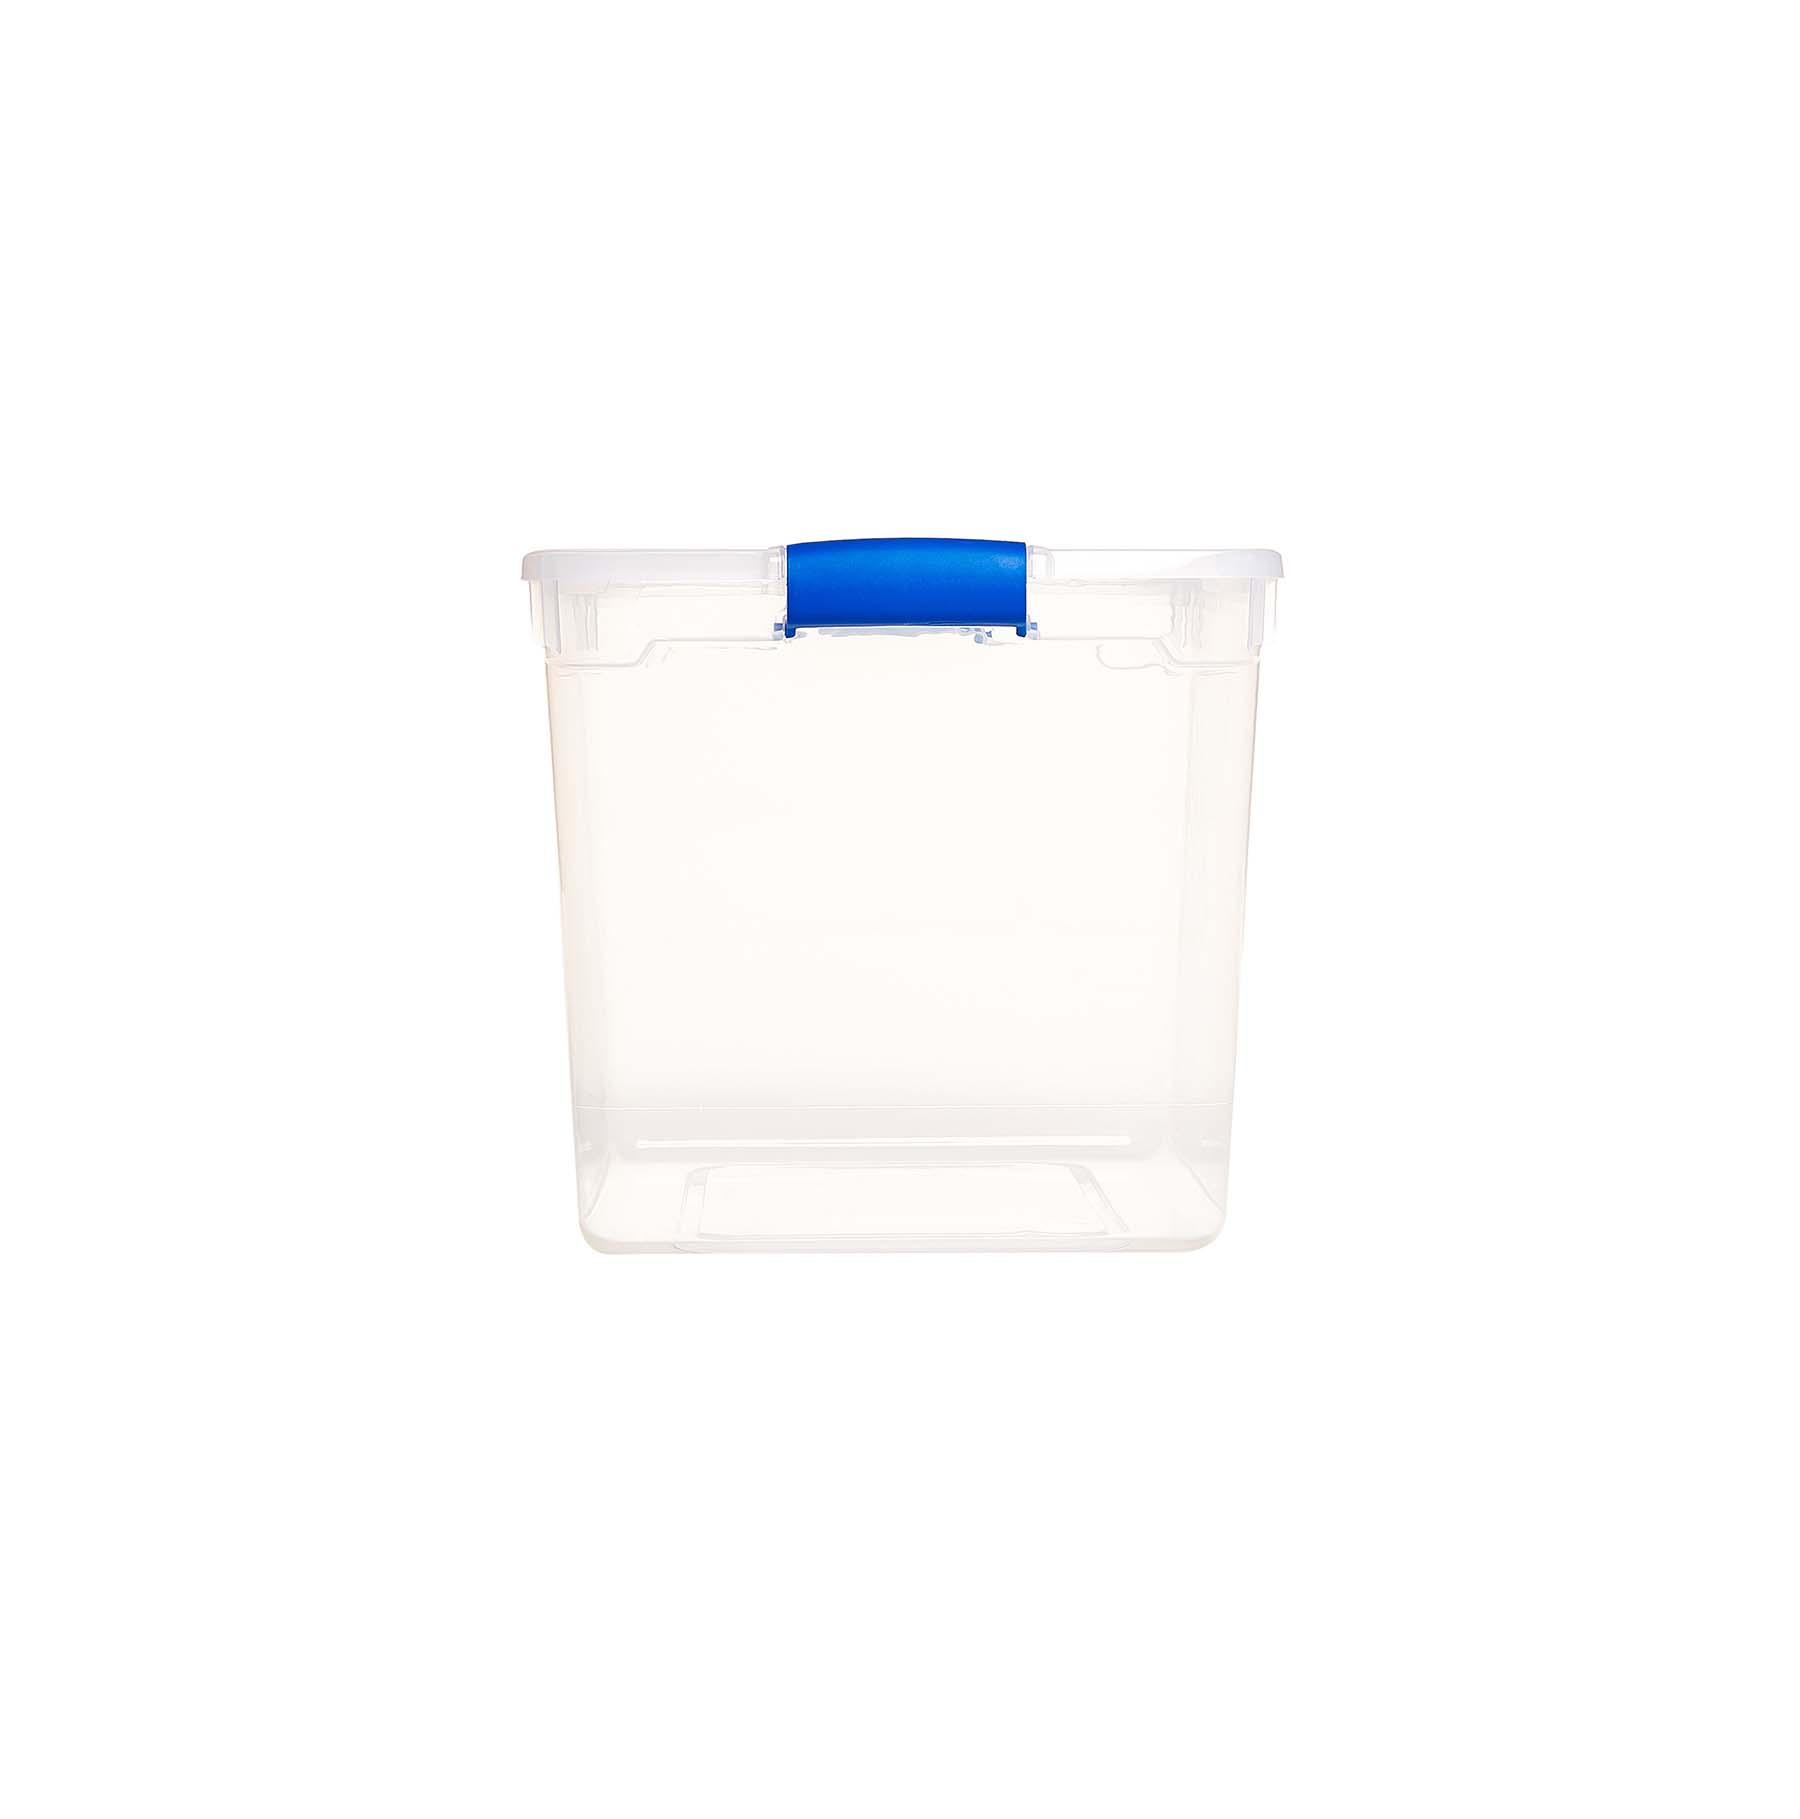 1452b9c07a87 Homz 31 Qt. Clear Latching Storage Containers, Clear/Blue, Set of 4